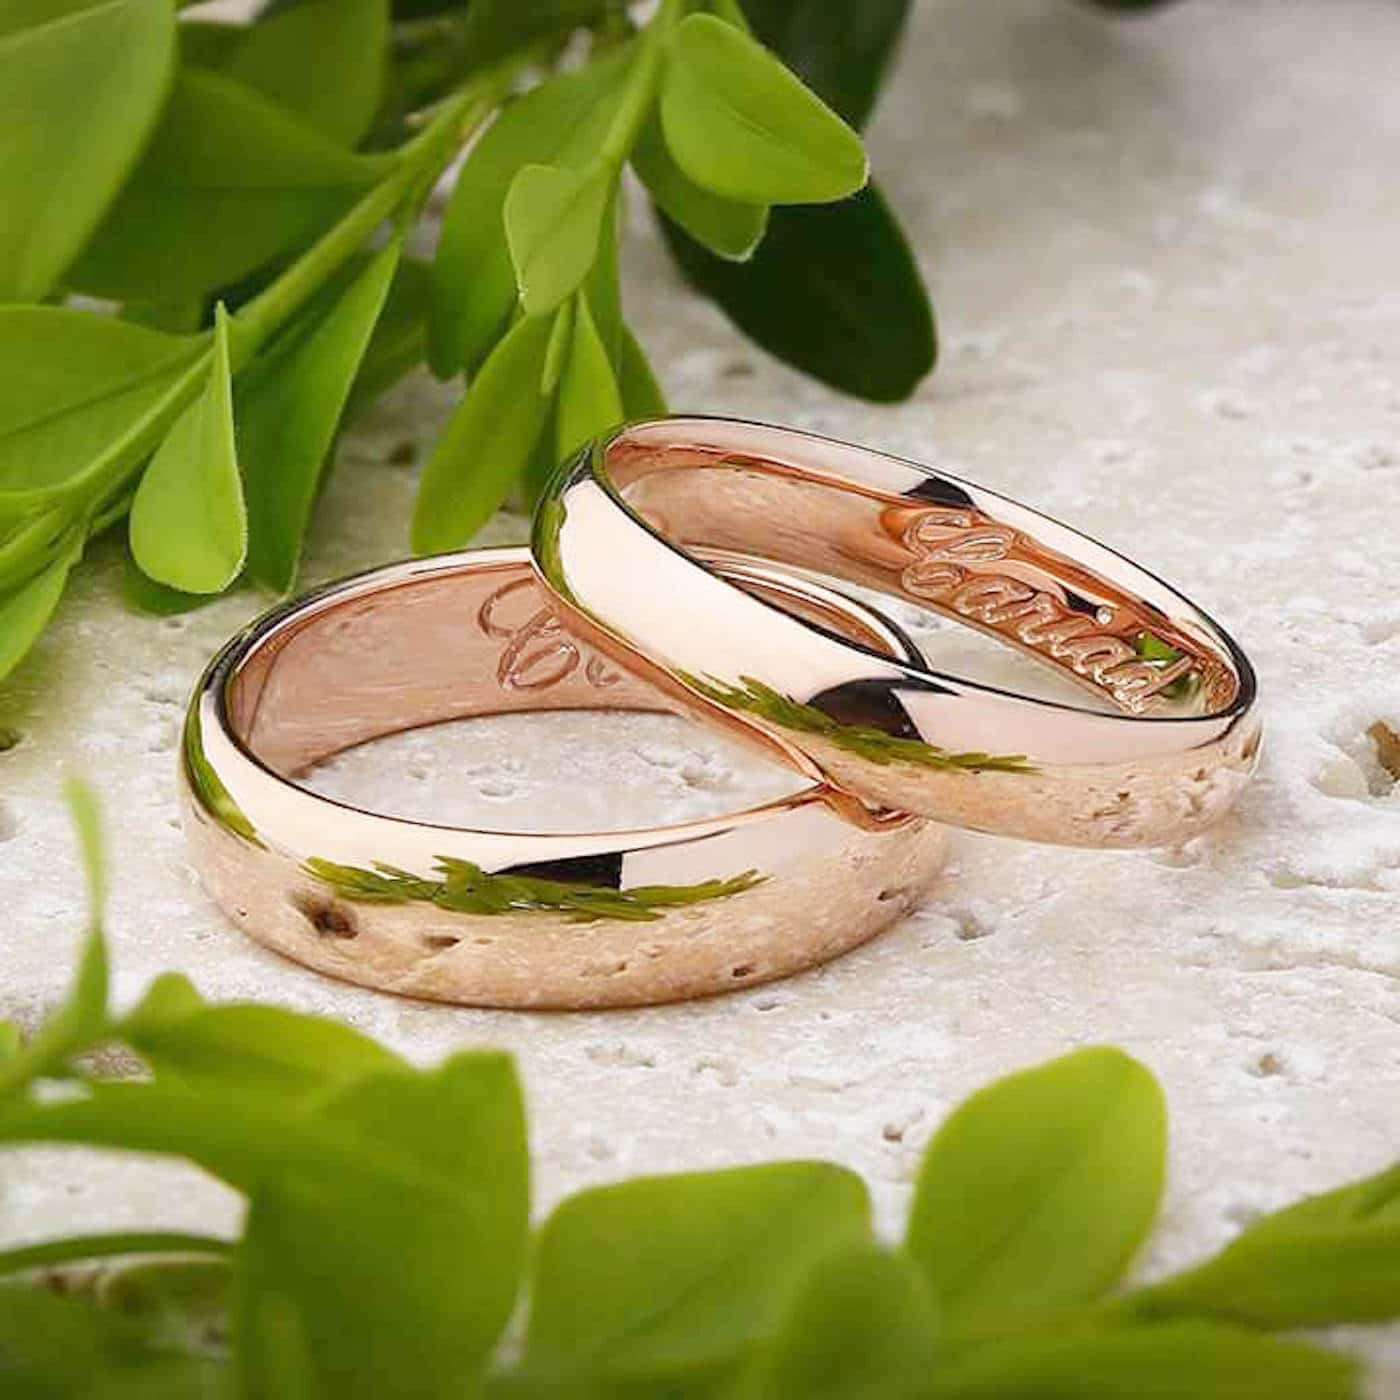 Engraved wedding rings by peter jackson carlisle